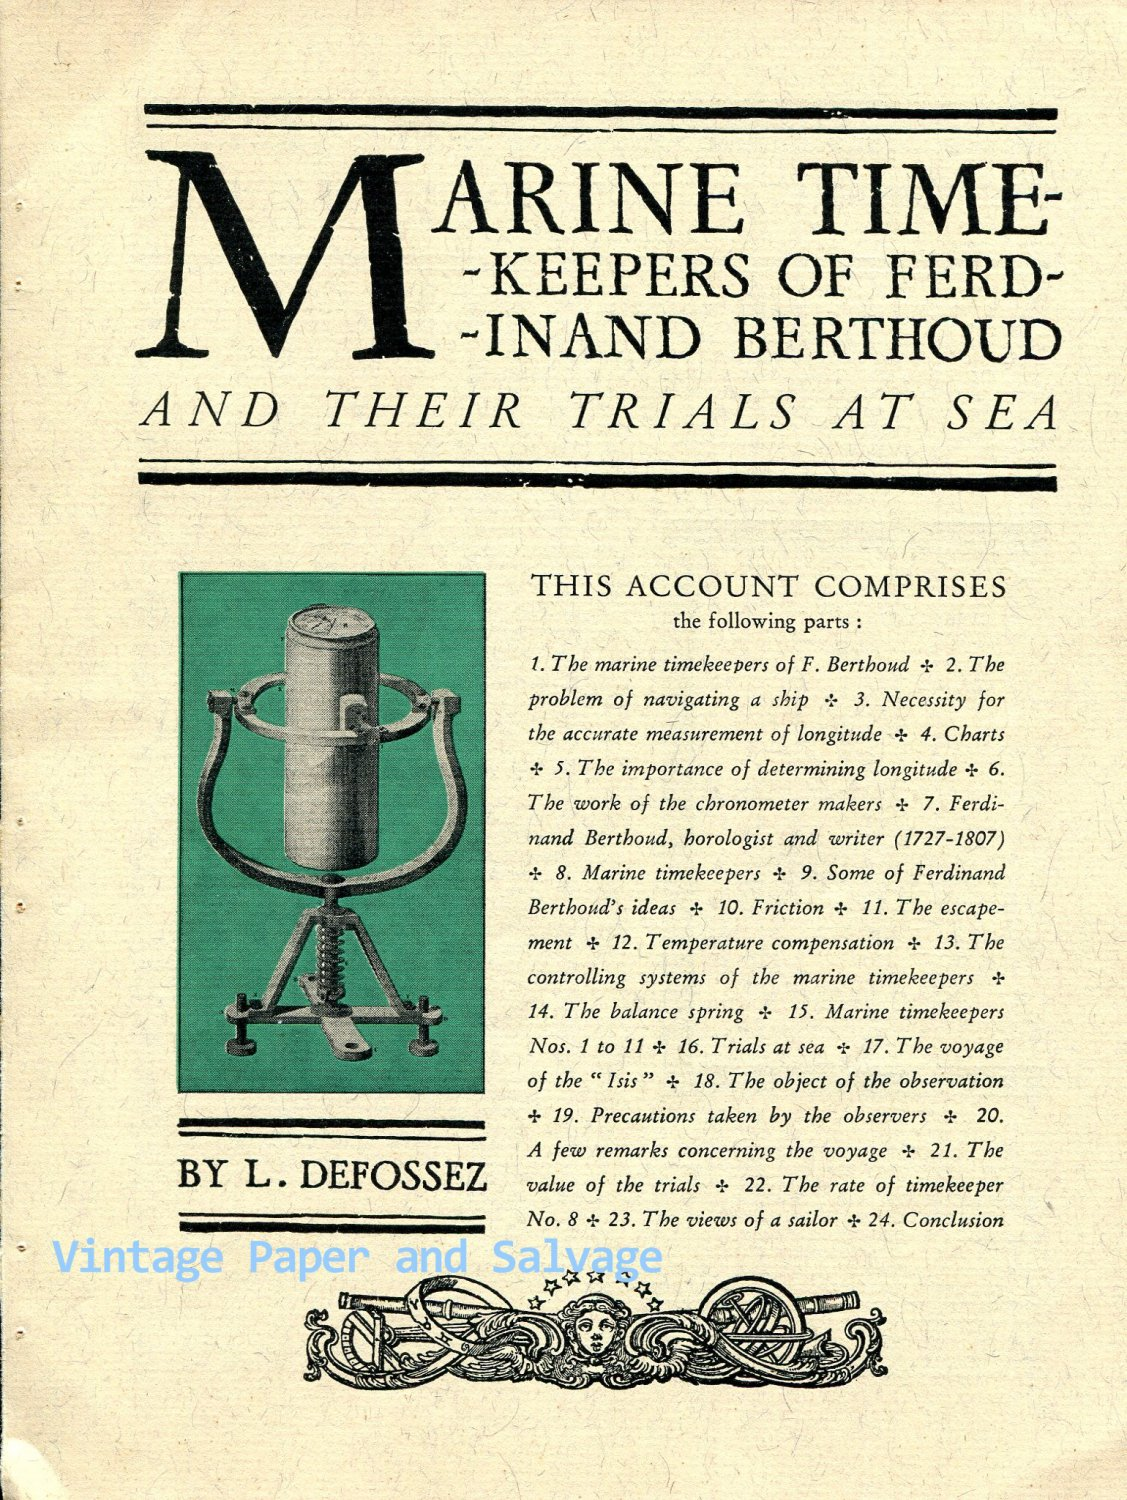 Ferdinand Berthoud Marine Timekeepers and Their Trials at Sea by L Defossez Vintage Horology